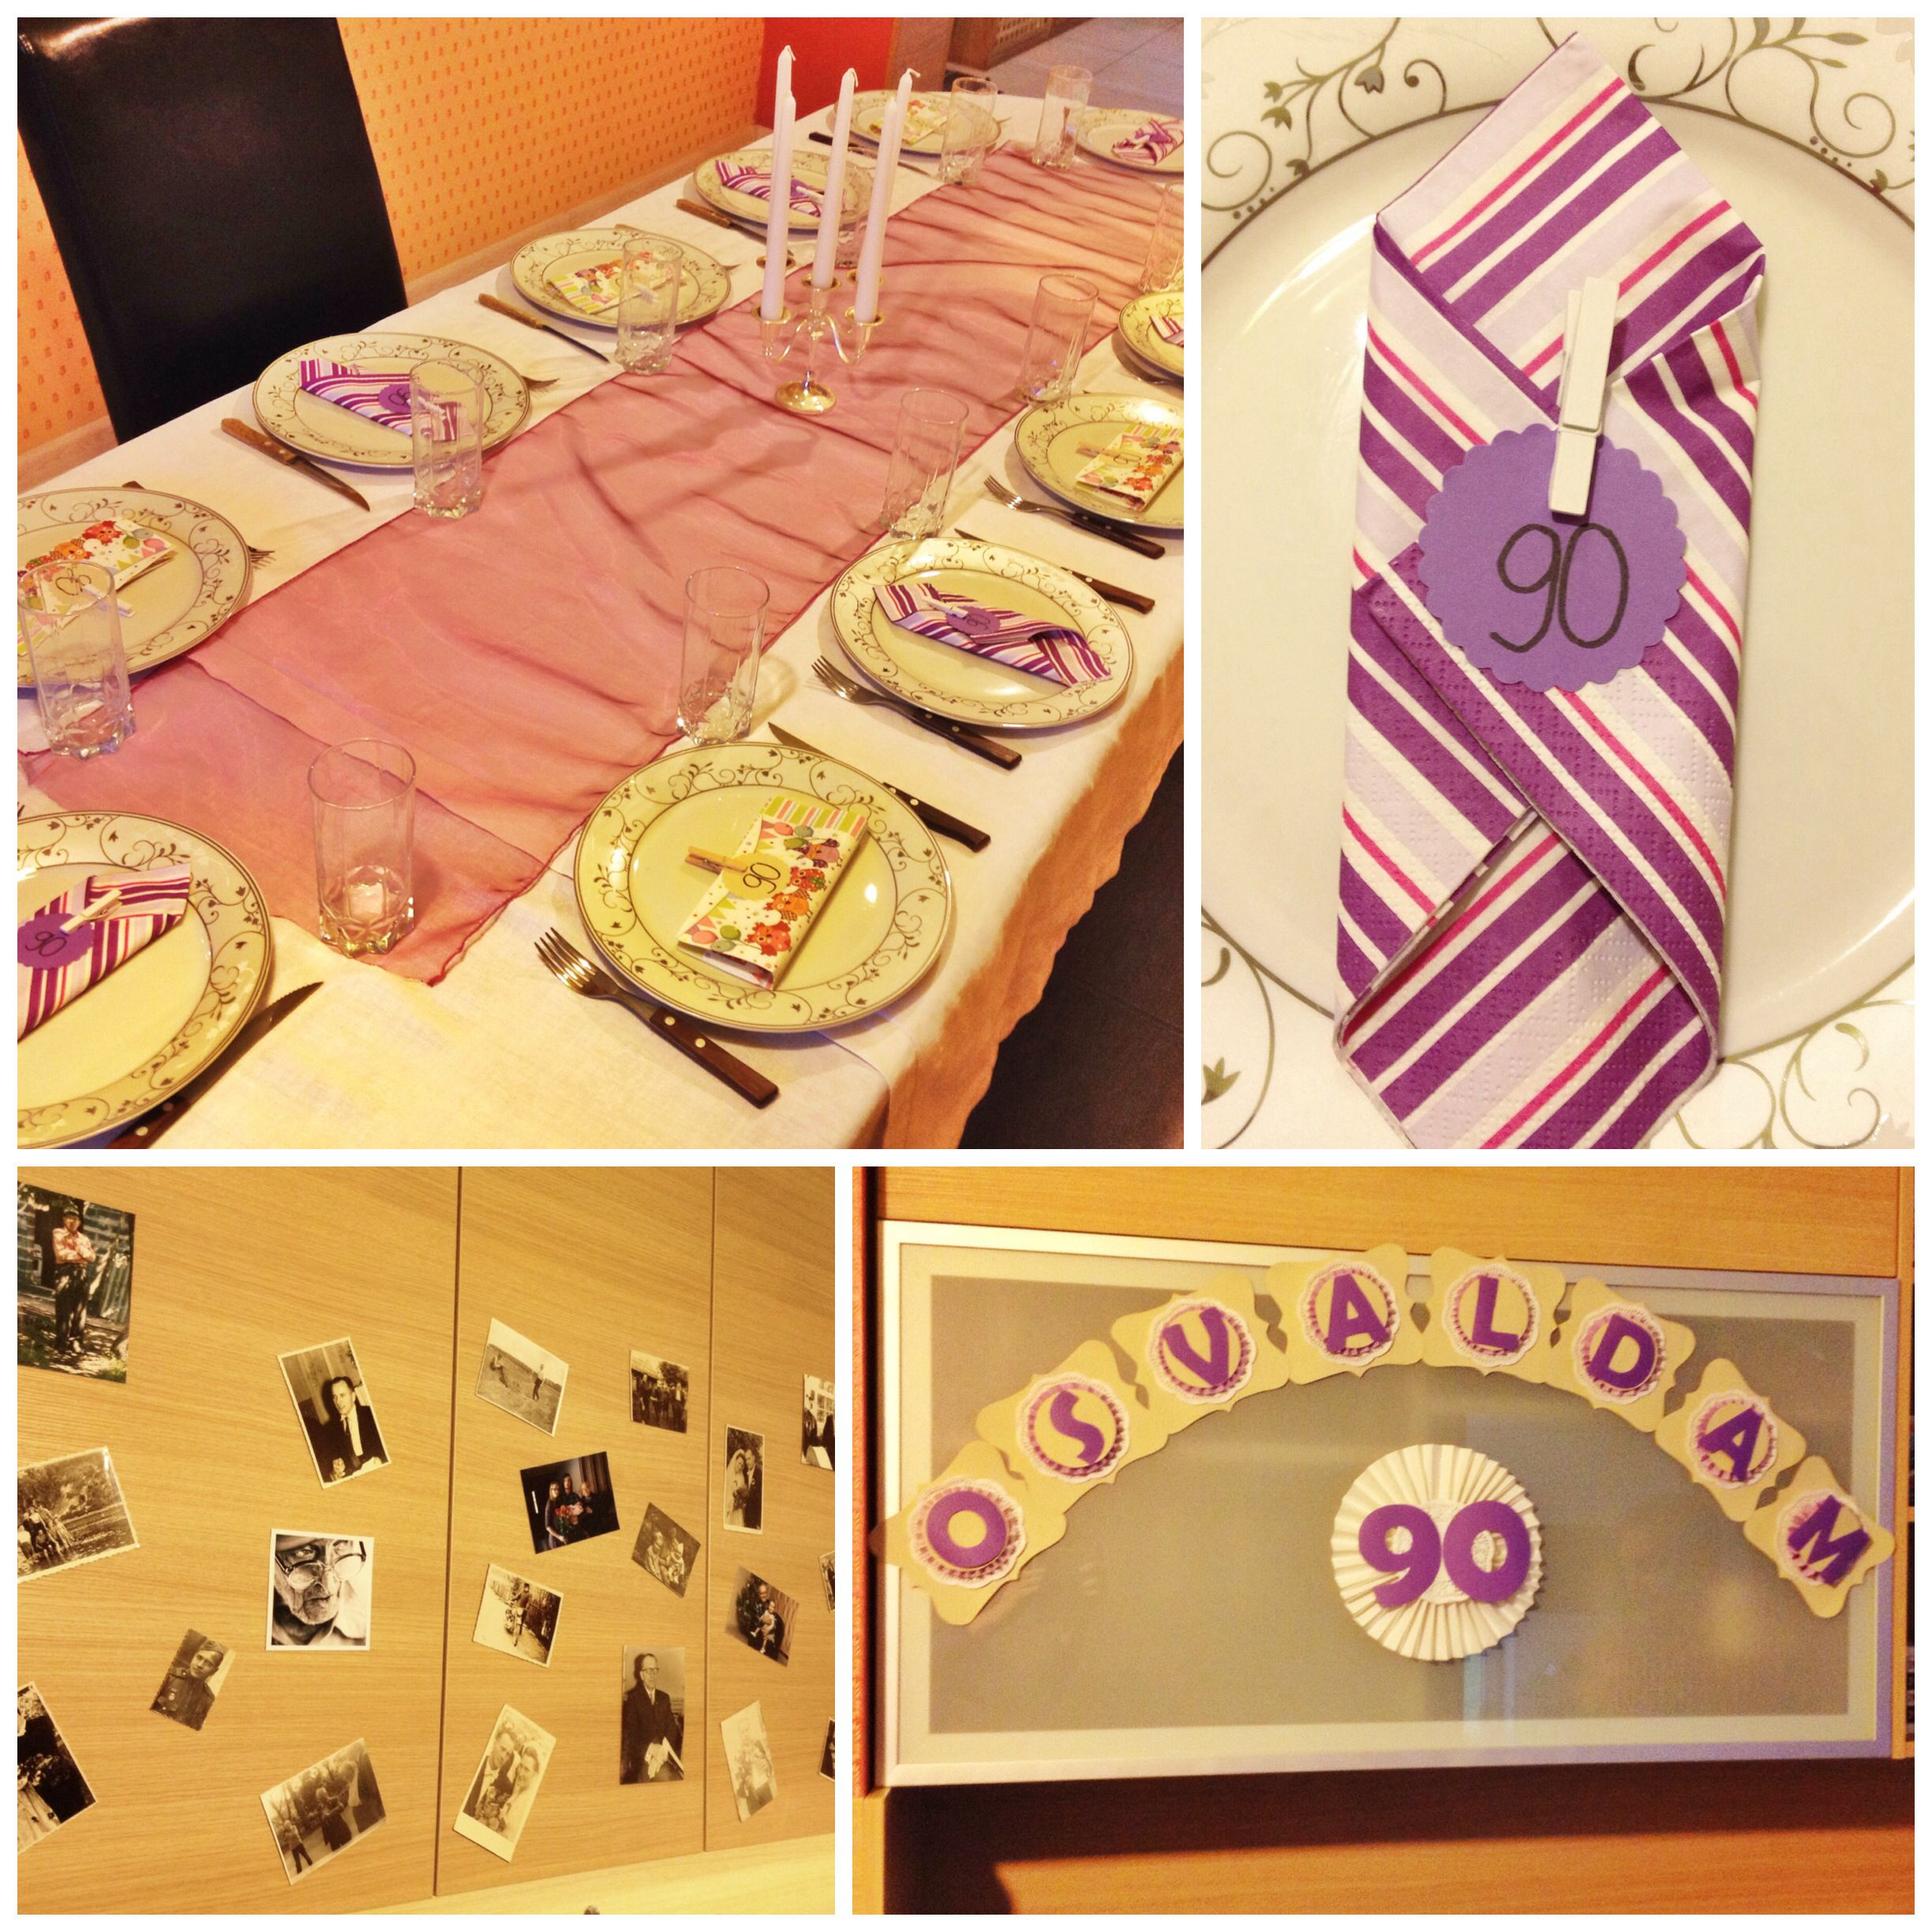 Table decoration for grandads 90's birthday- nothing fansy with some photos of his childhood, wedding day, job and nowadays.